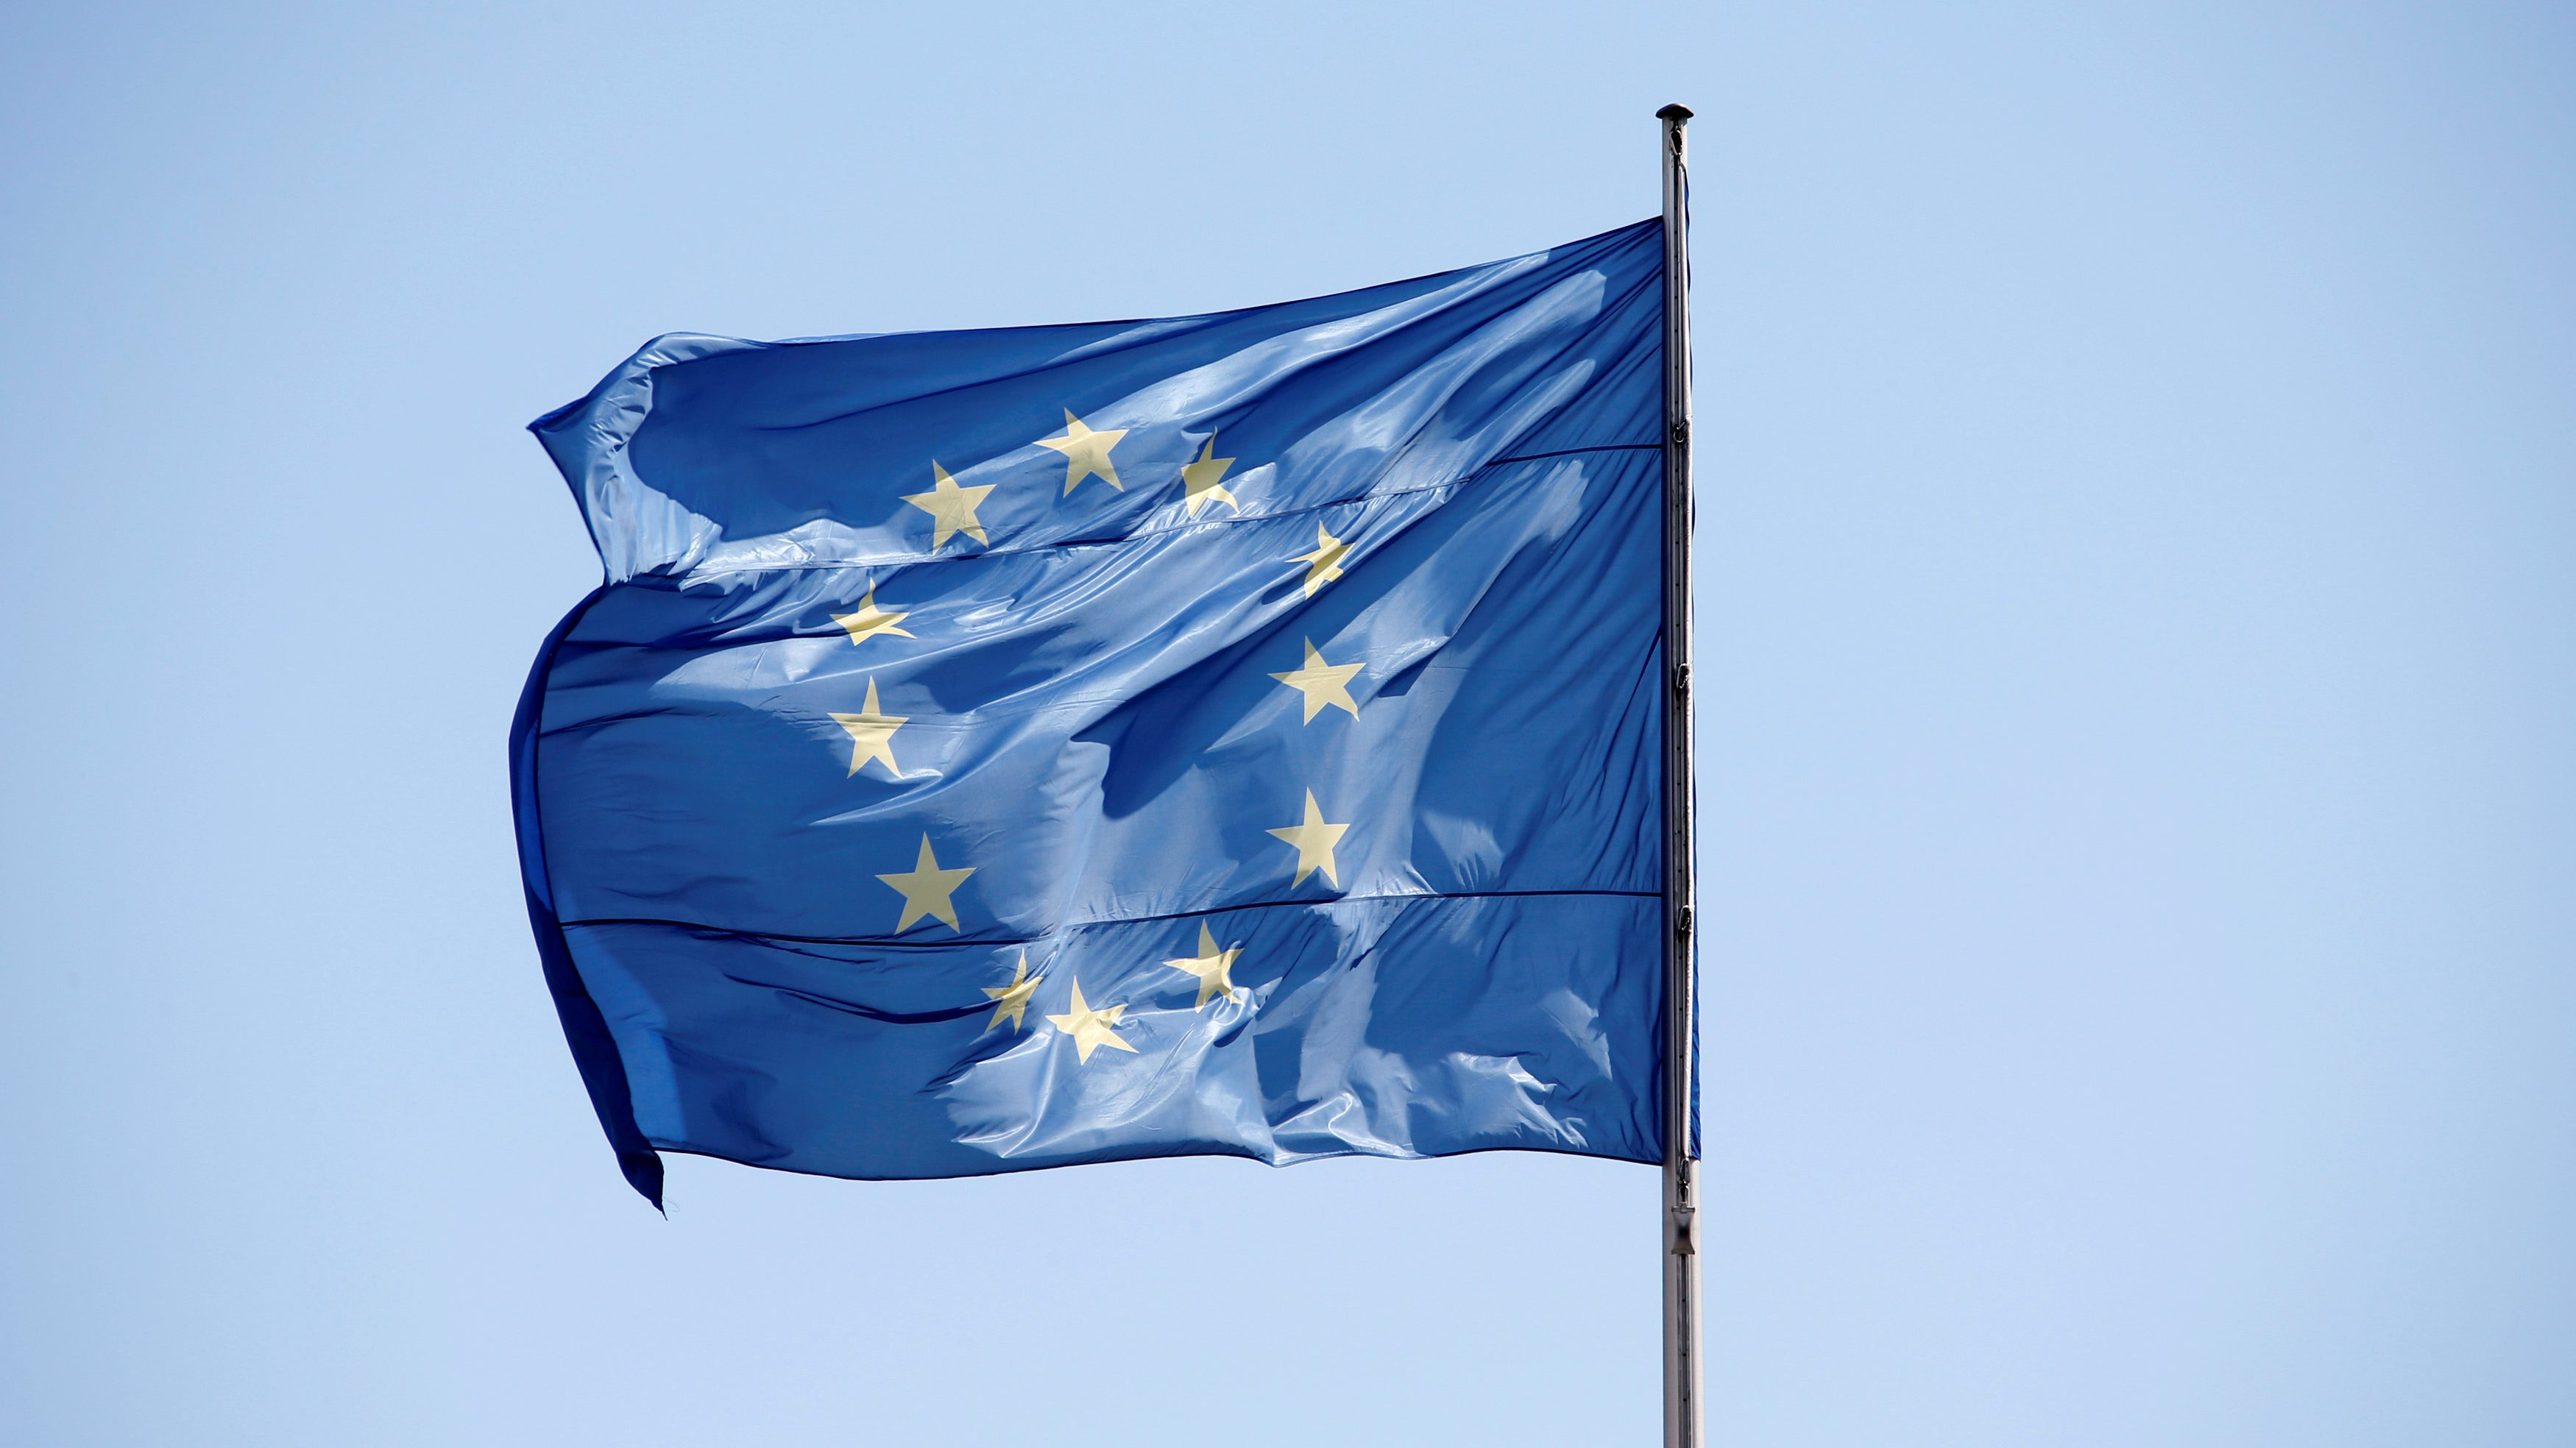 The European Union (EU) flag is seen on a sunny day and blue sky at the Chancellery in Berlin, Germany